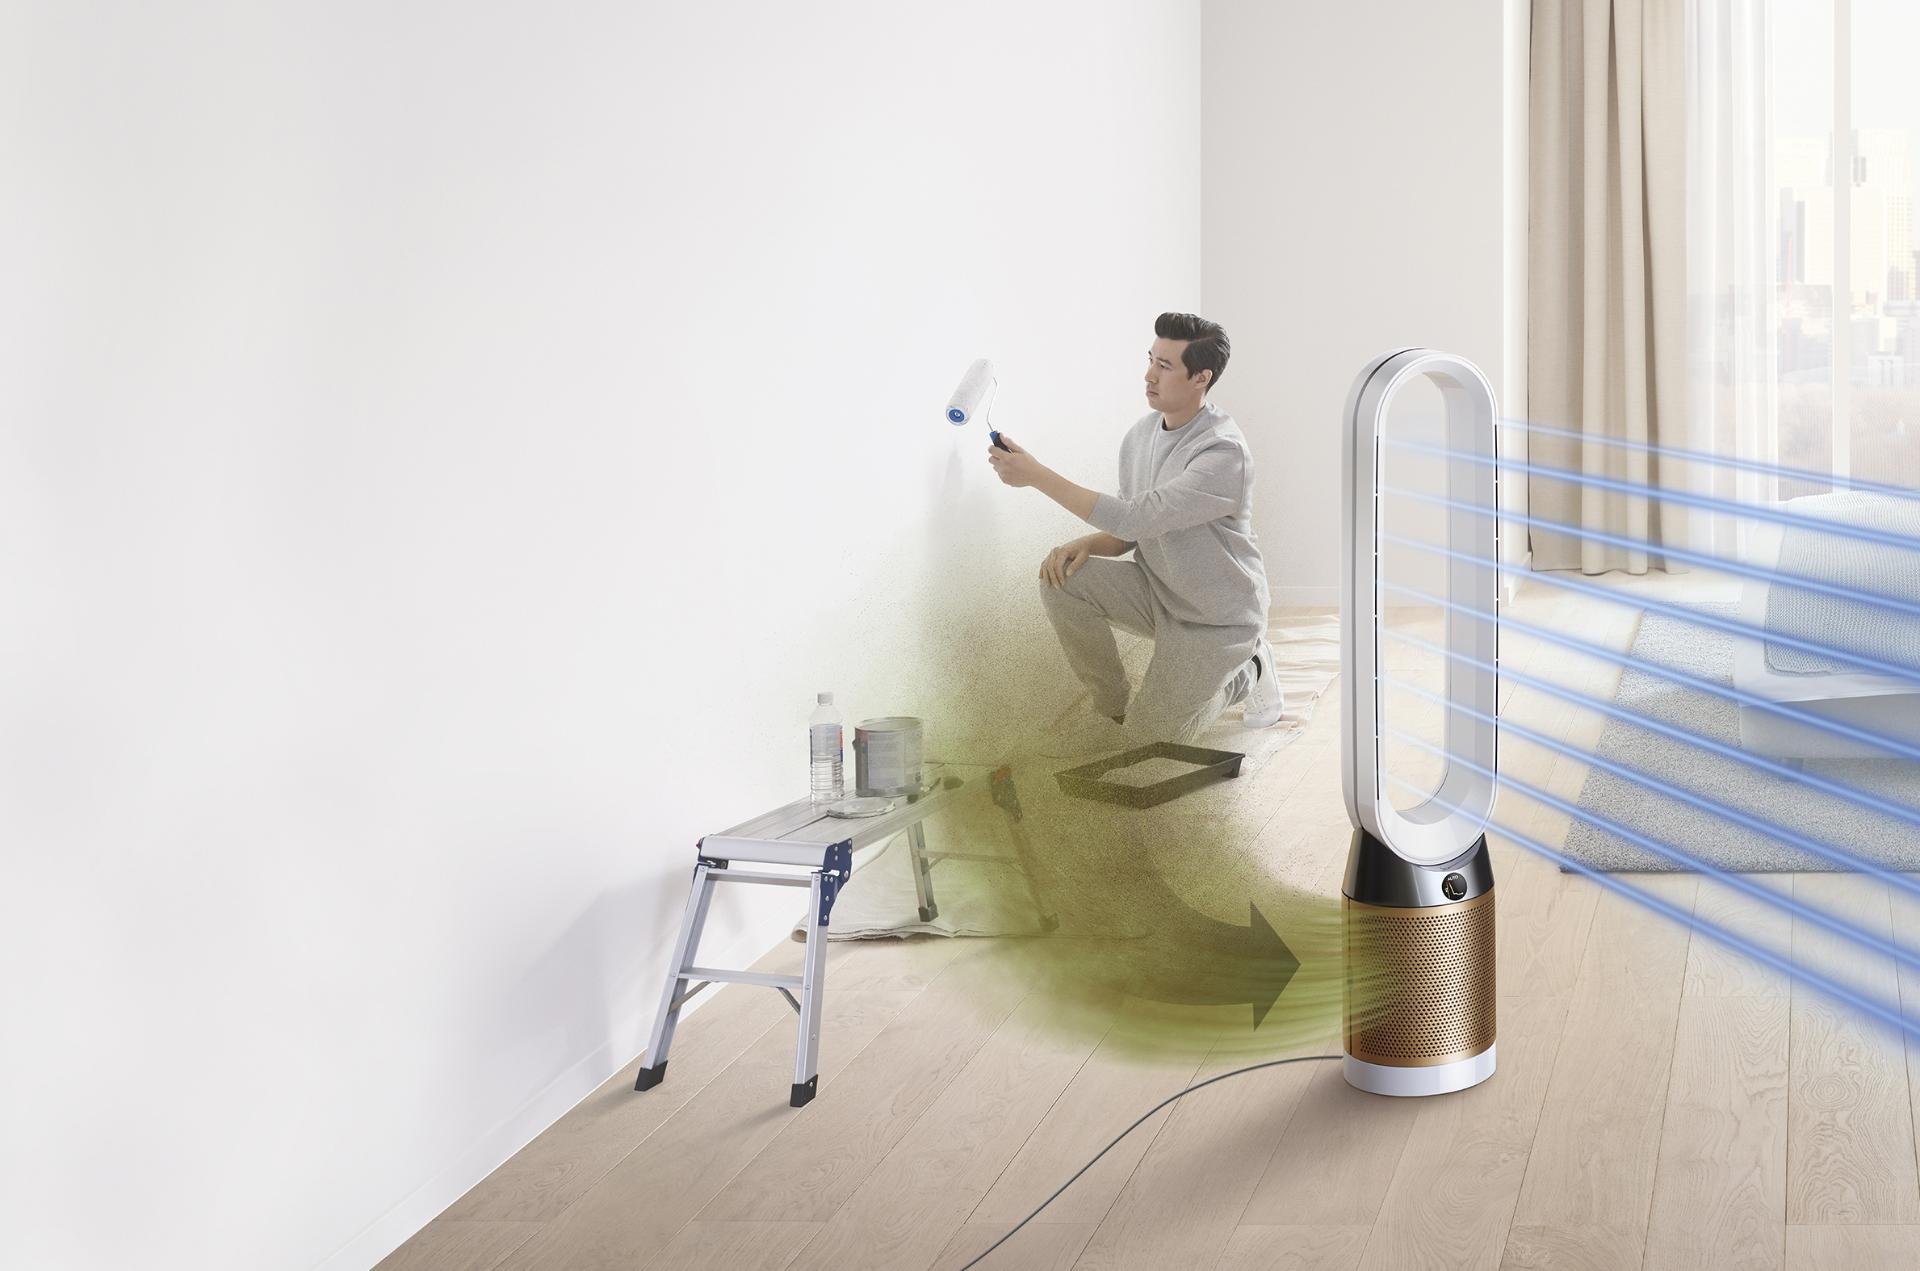 Dyson Pure Cool Cryptomic projecting purified air